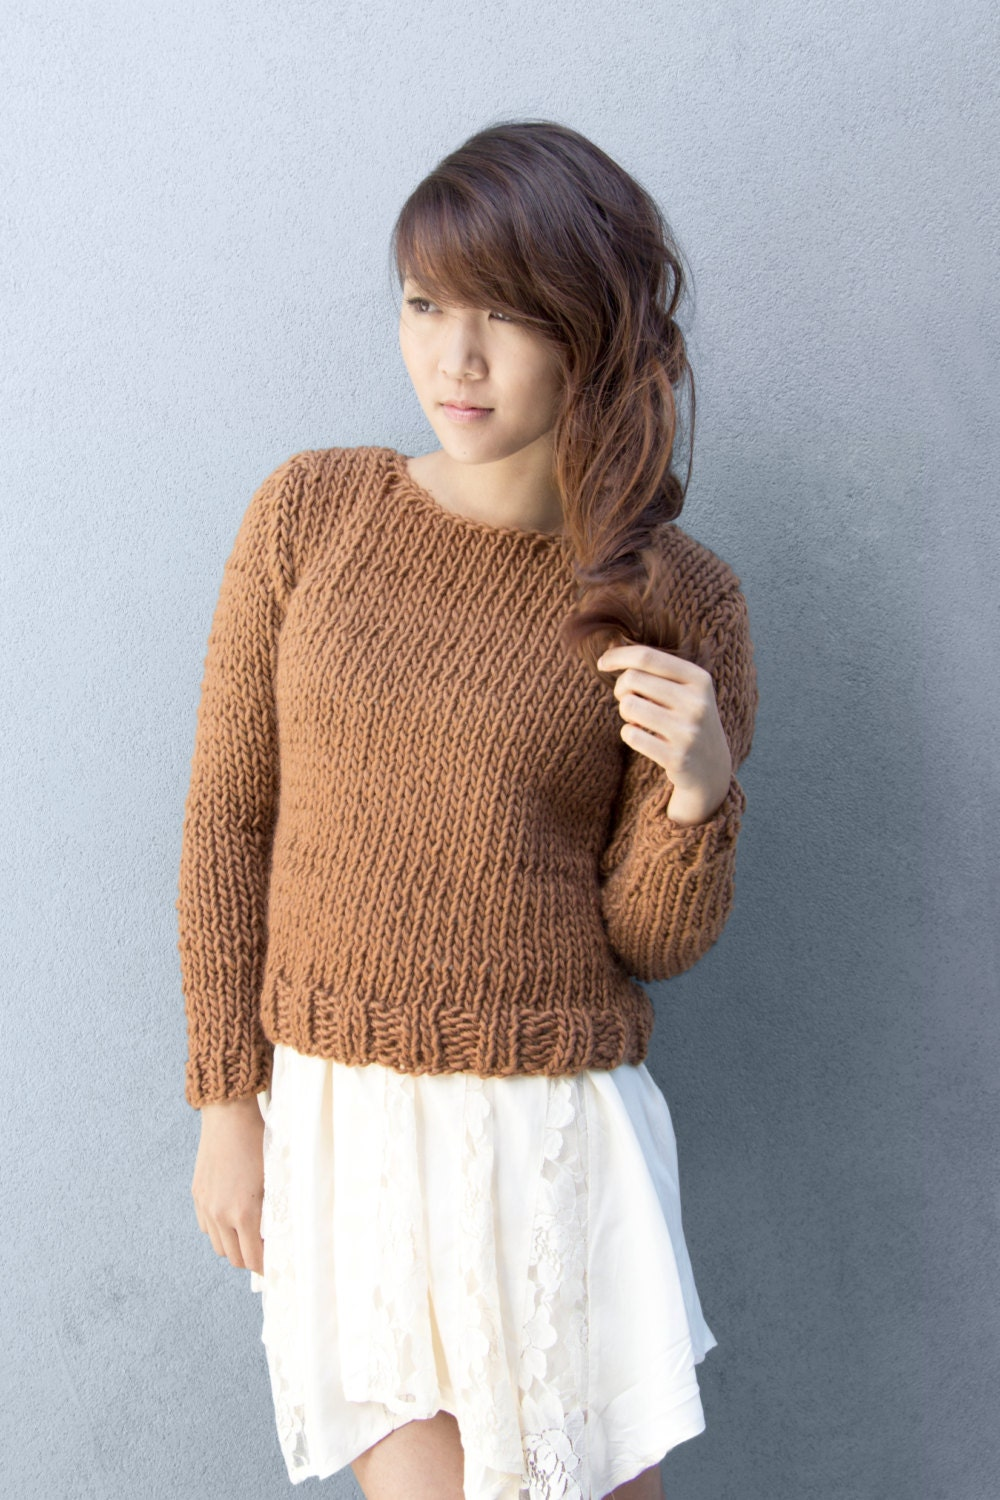 Easy Cardigan Knitting Pattern : Knitting Pattern for Beginners Basic Sweater Easy Throw-on